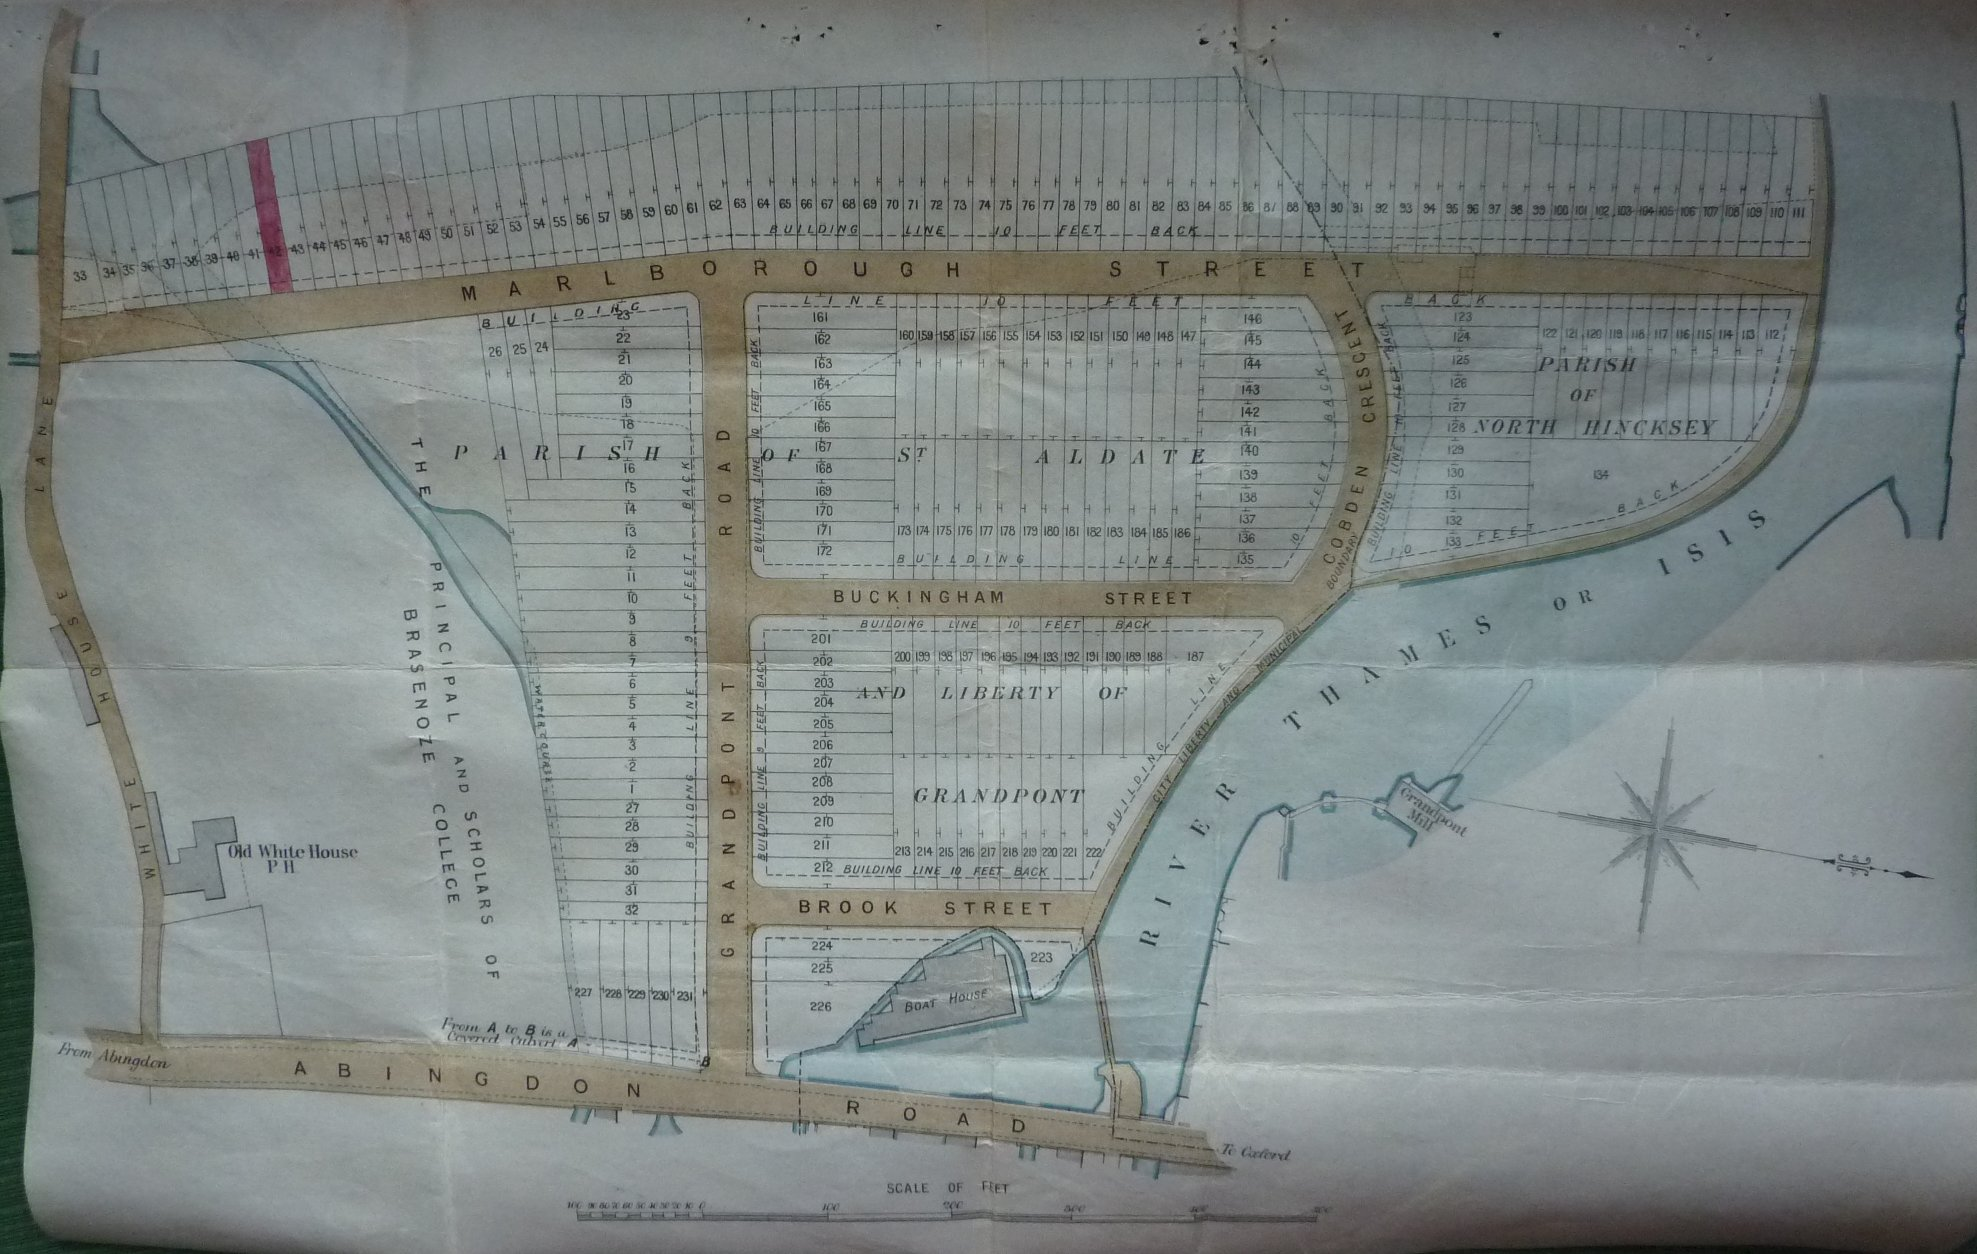 Grandpont estate map Ox Building  Invest Co 1879 1